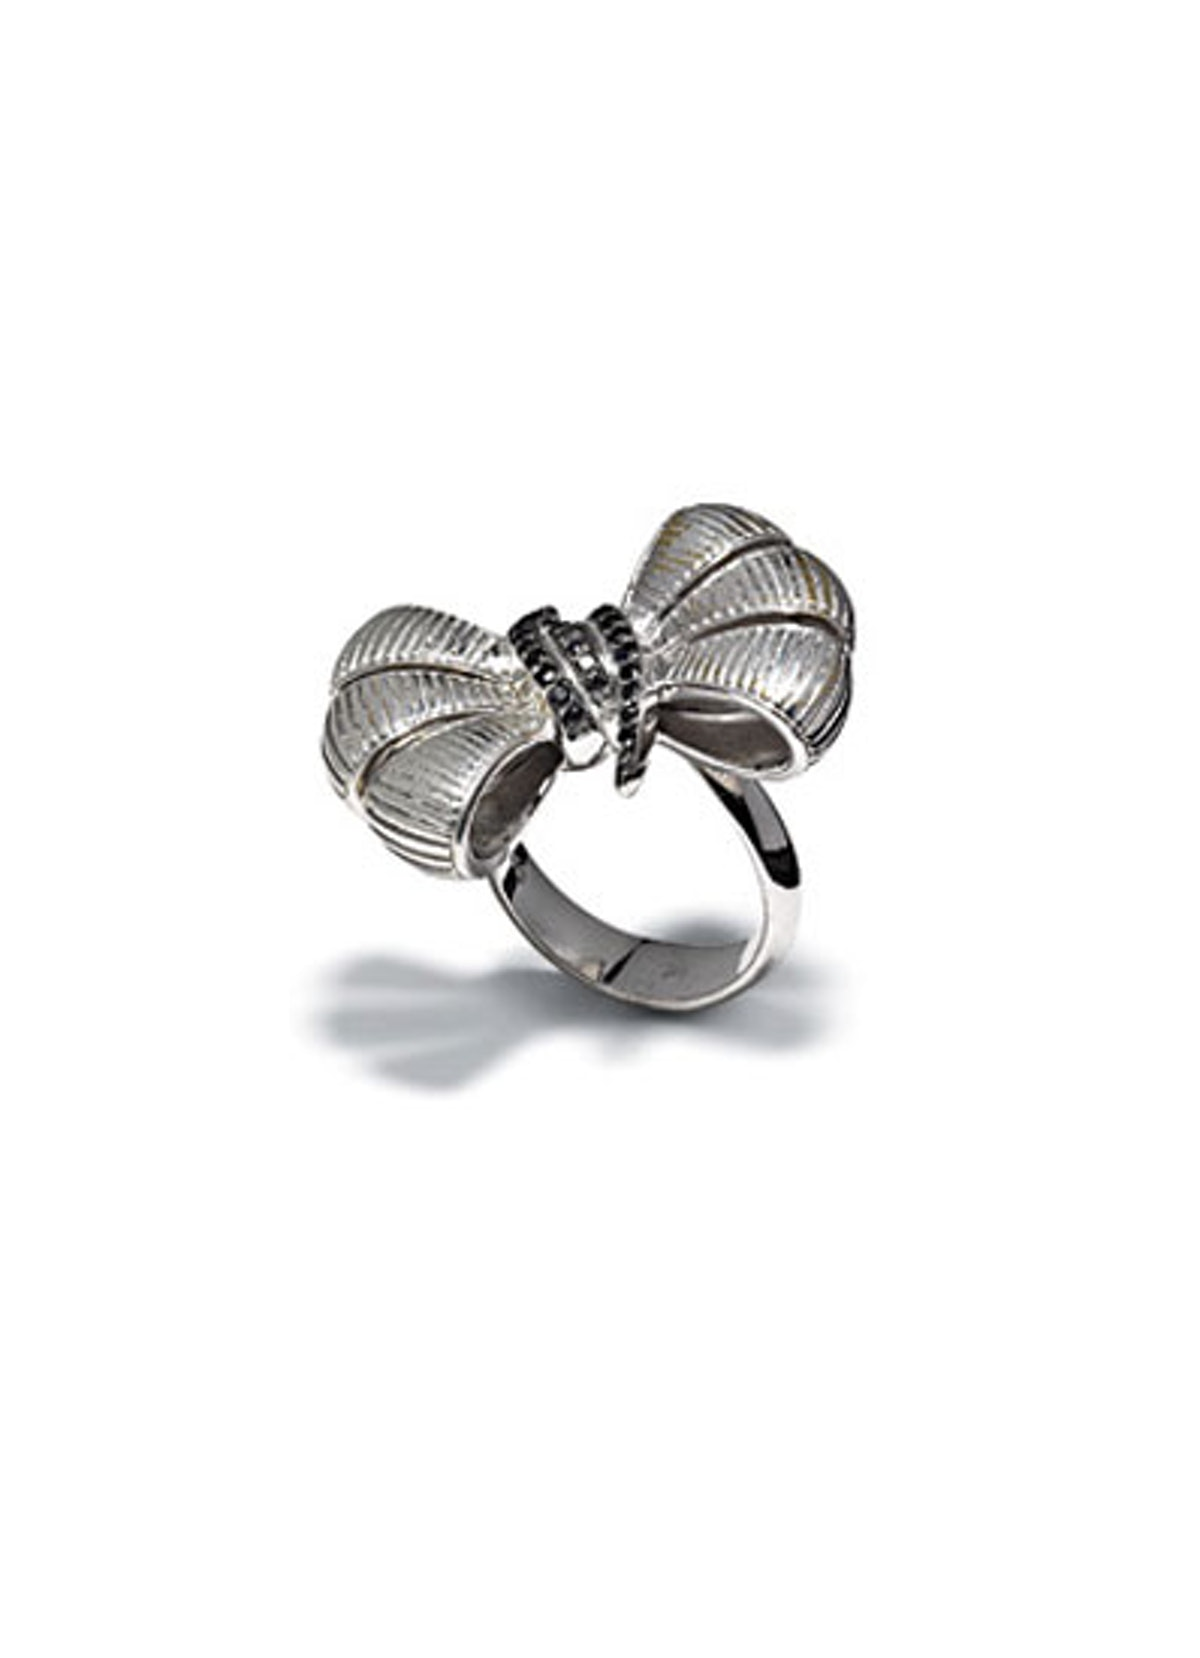 acss-claudia-mata-jewelry-recommendations-01-v.jpg